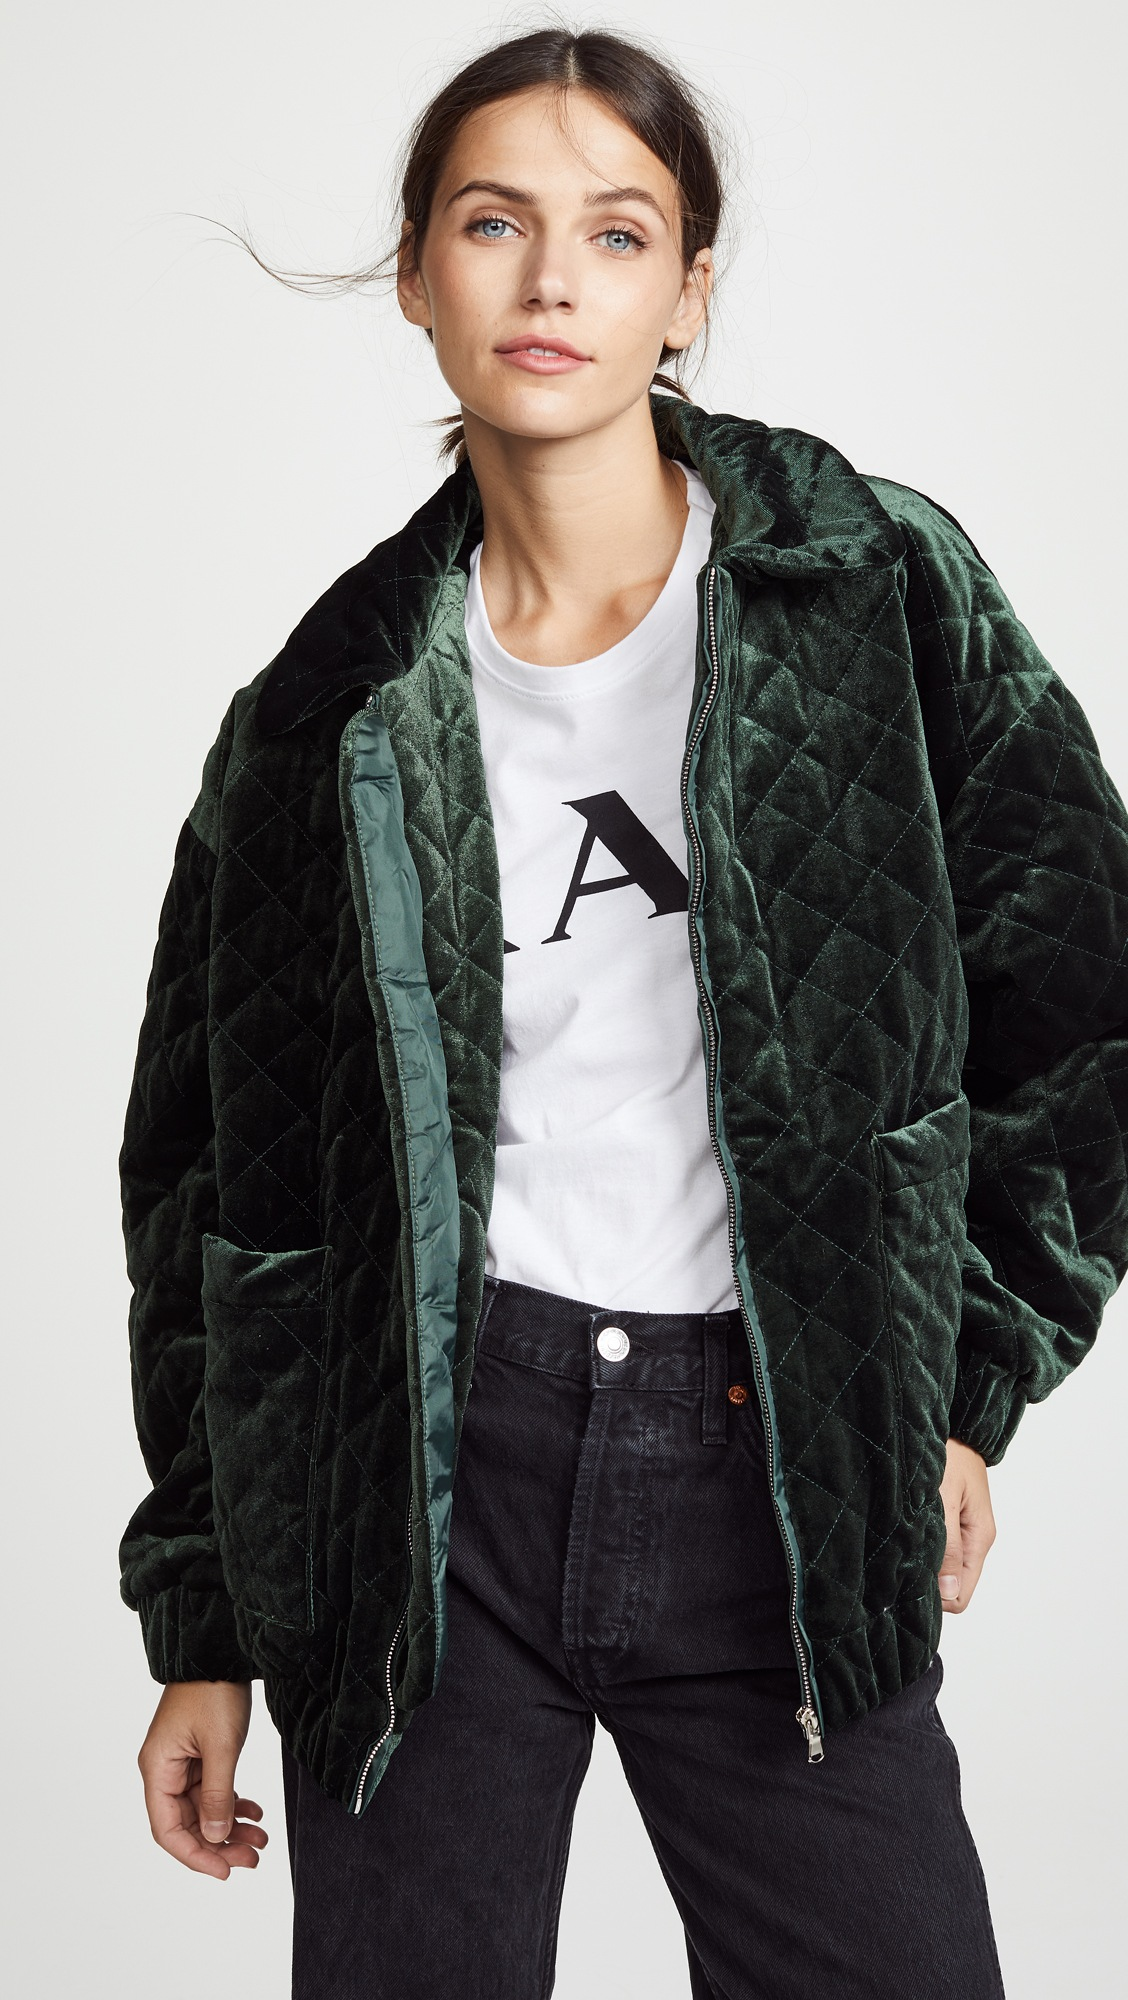 Thumbnail for 9 vegan winter coats that are cozy, cool, and sustainable